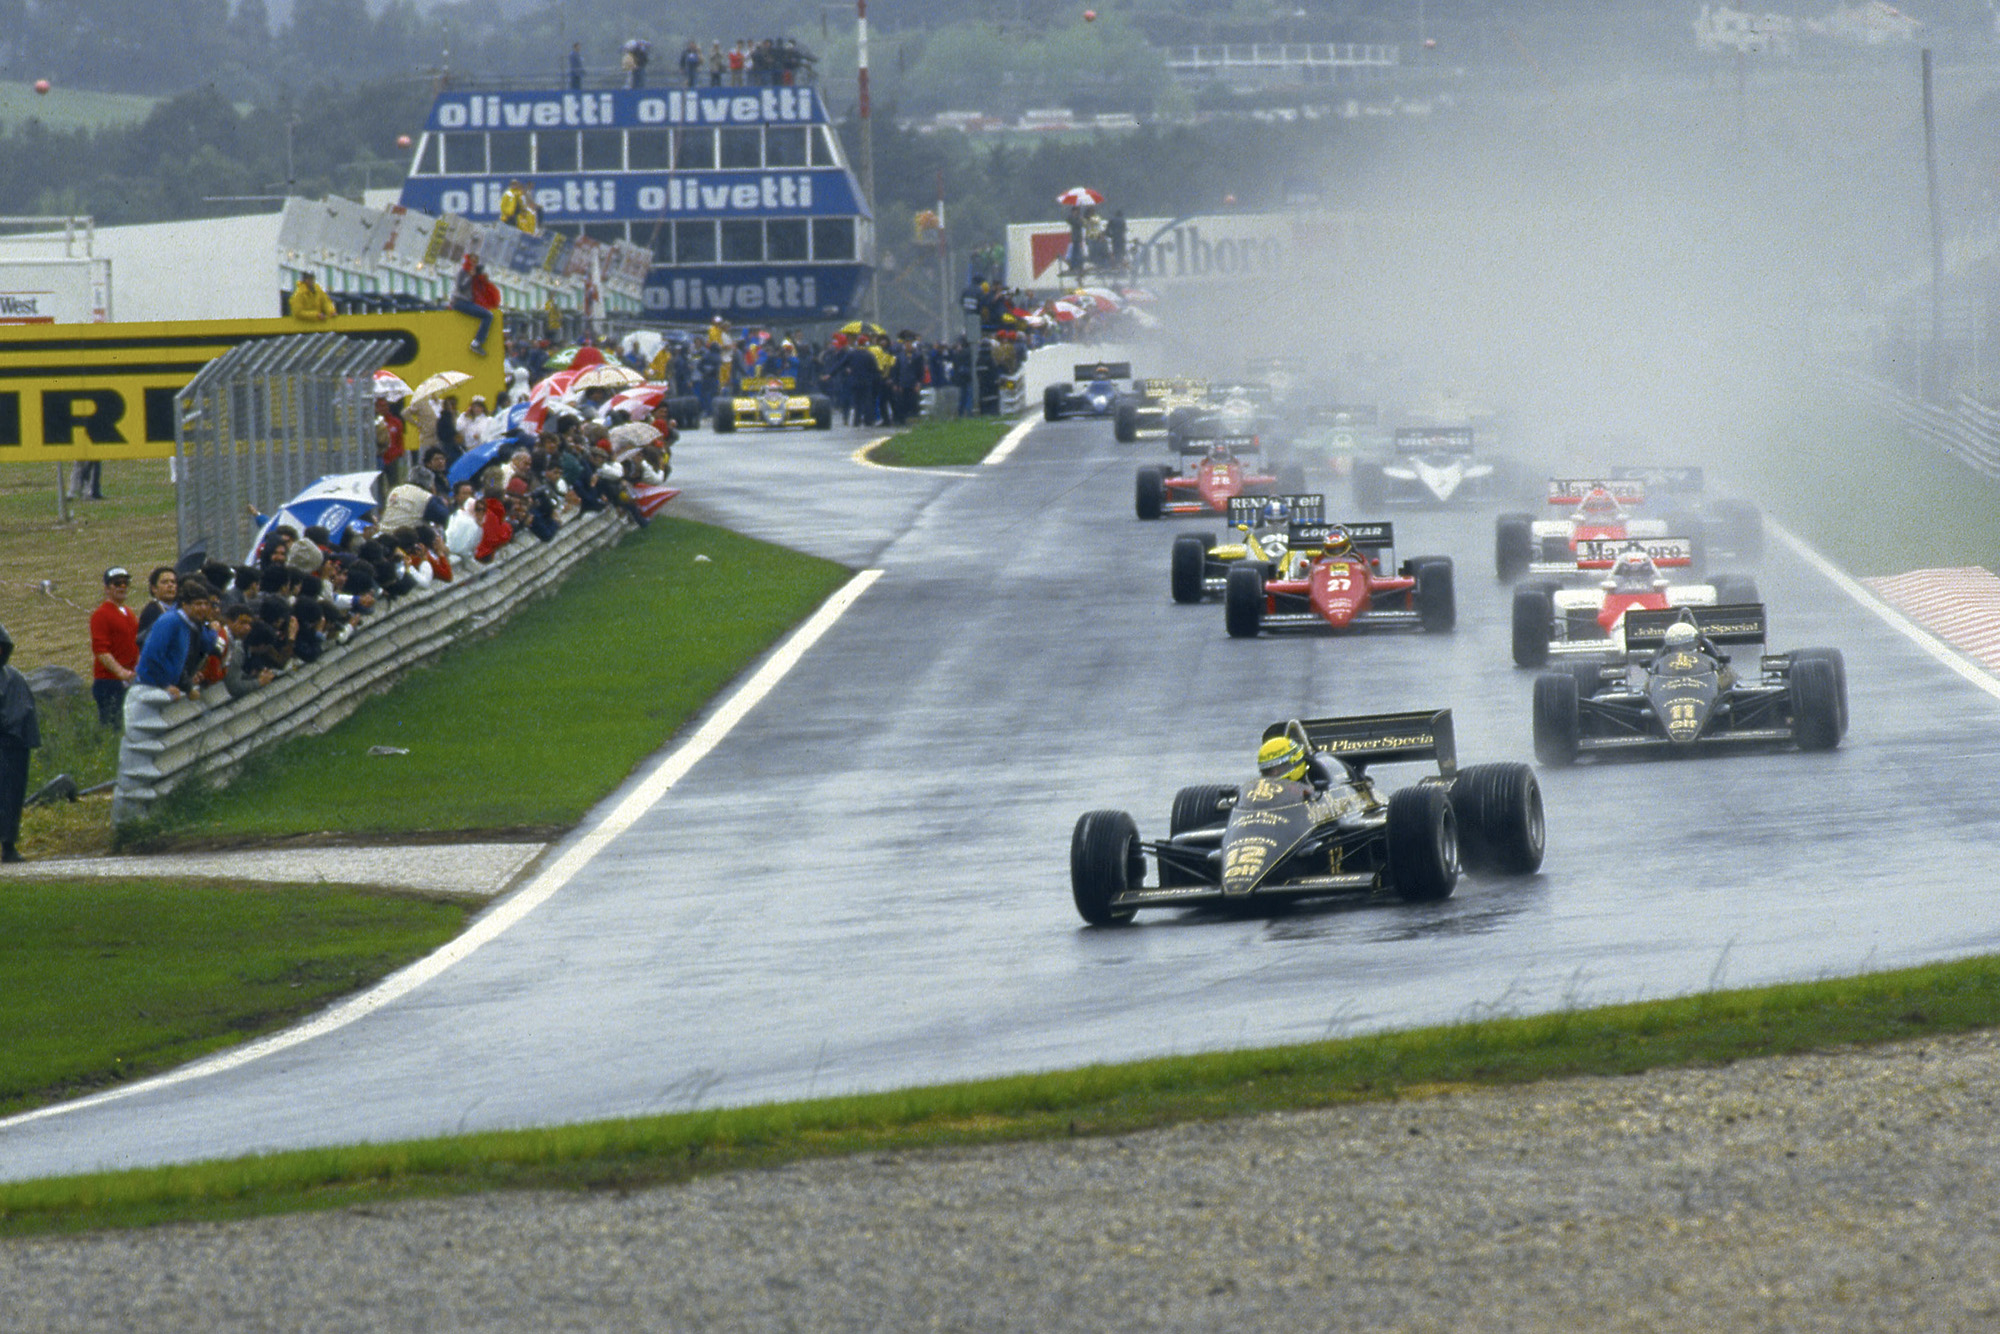 Ayrton Senna leads from the start of the 1985 Portuguese Grand Prix